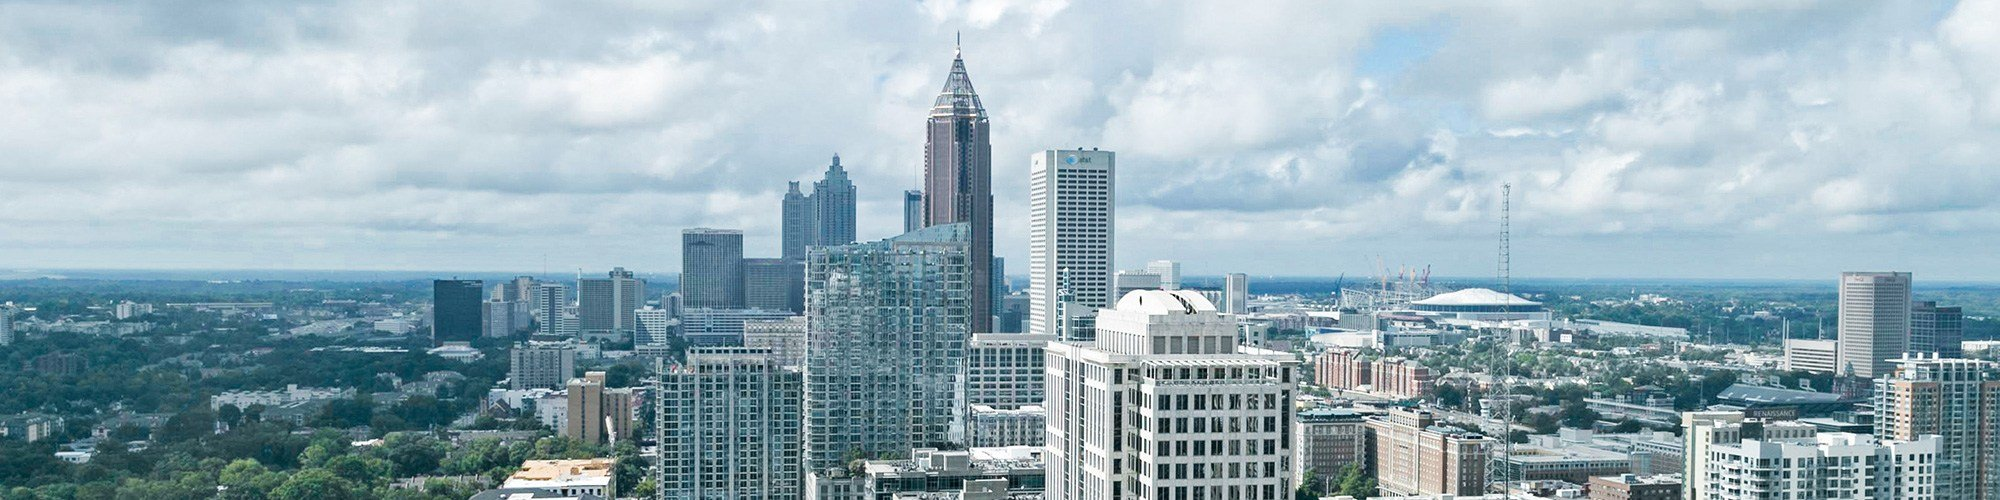 banner-1075-peachtree-atlanta-view.jpg